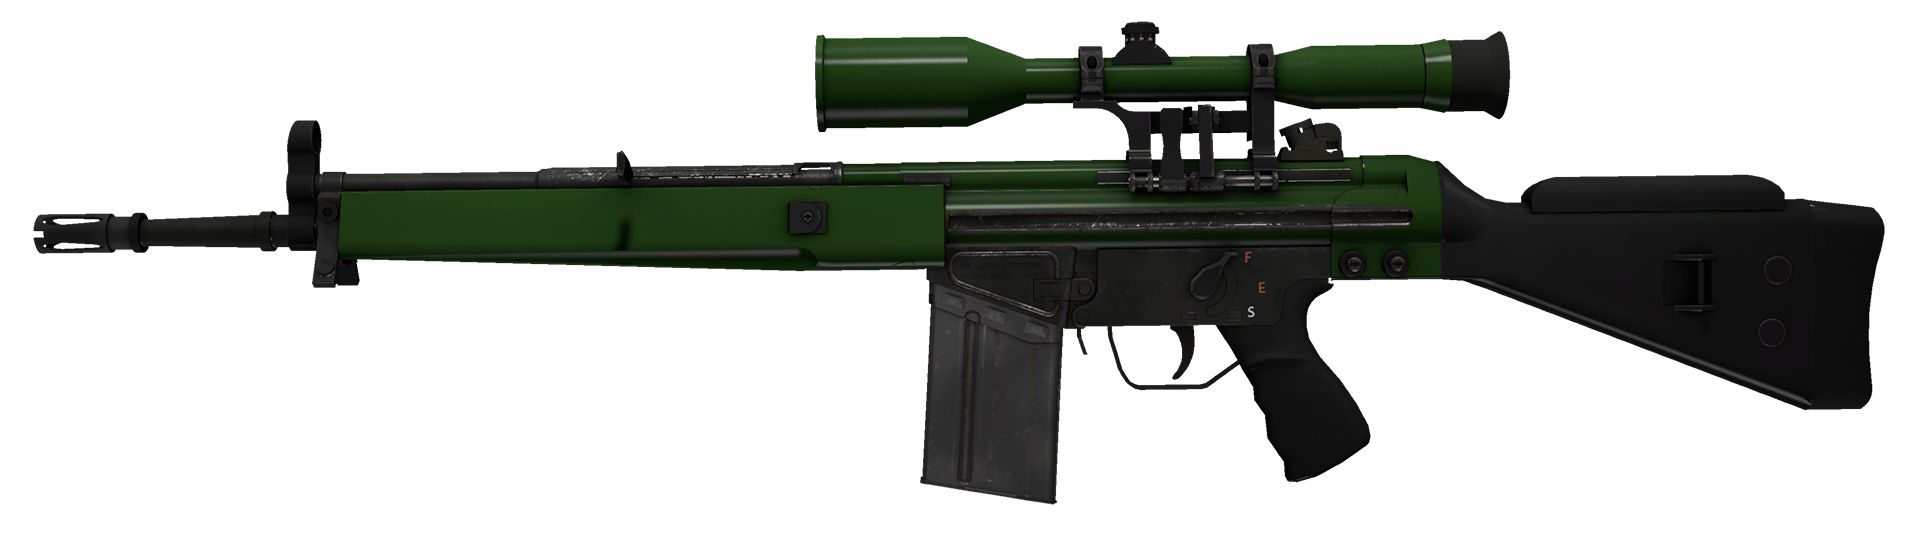 G3SG1 Green Apple Large Rendering